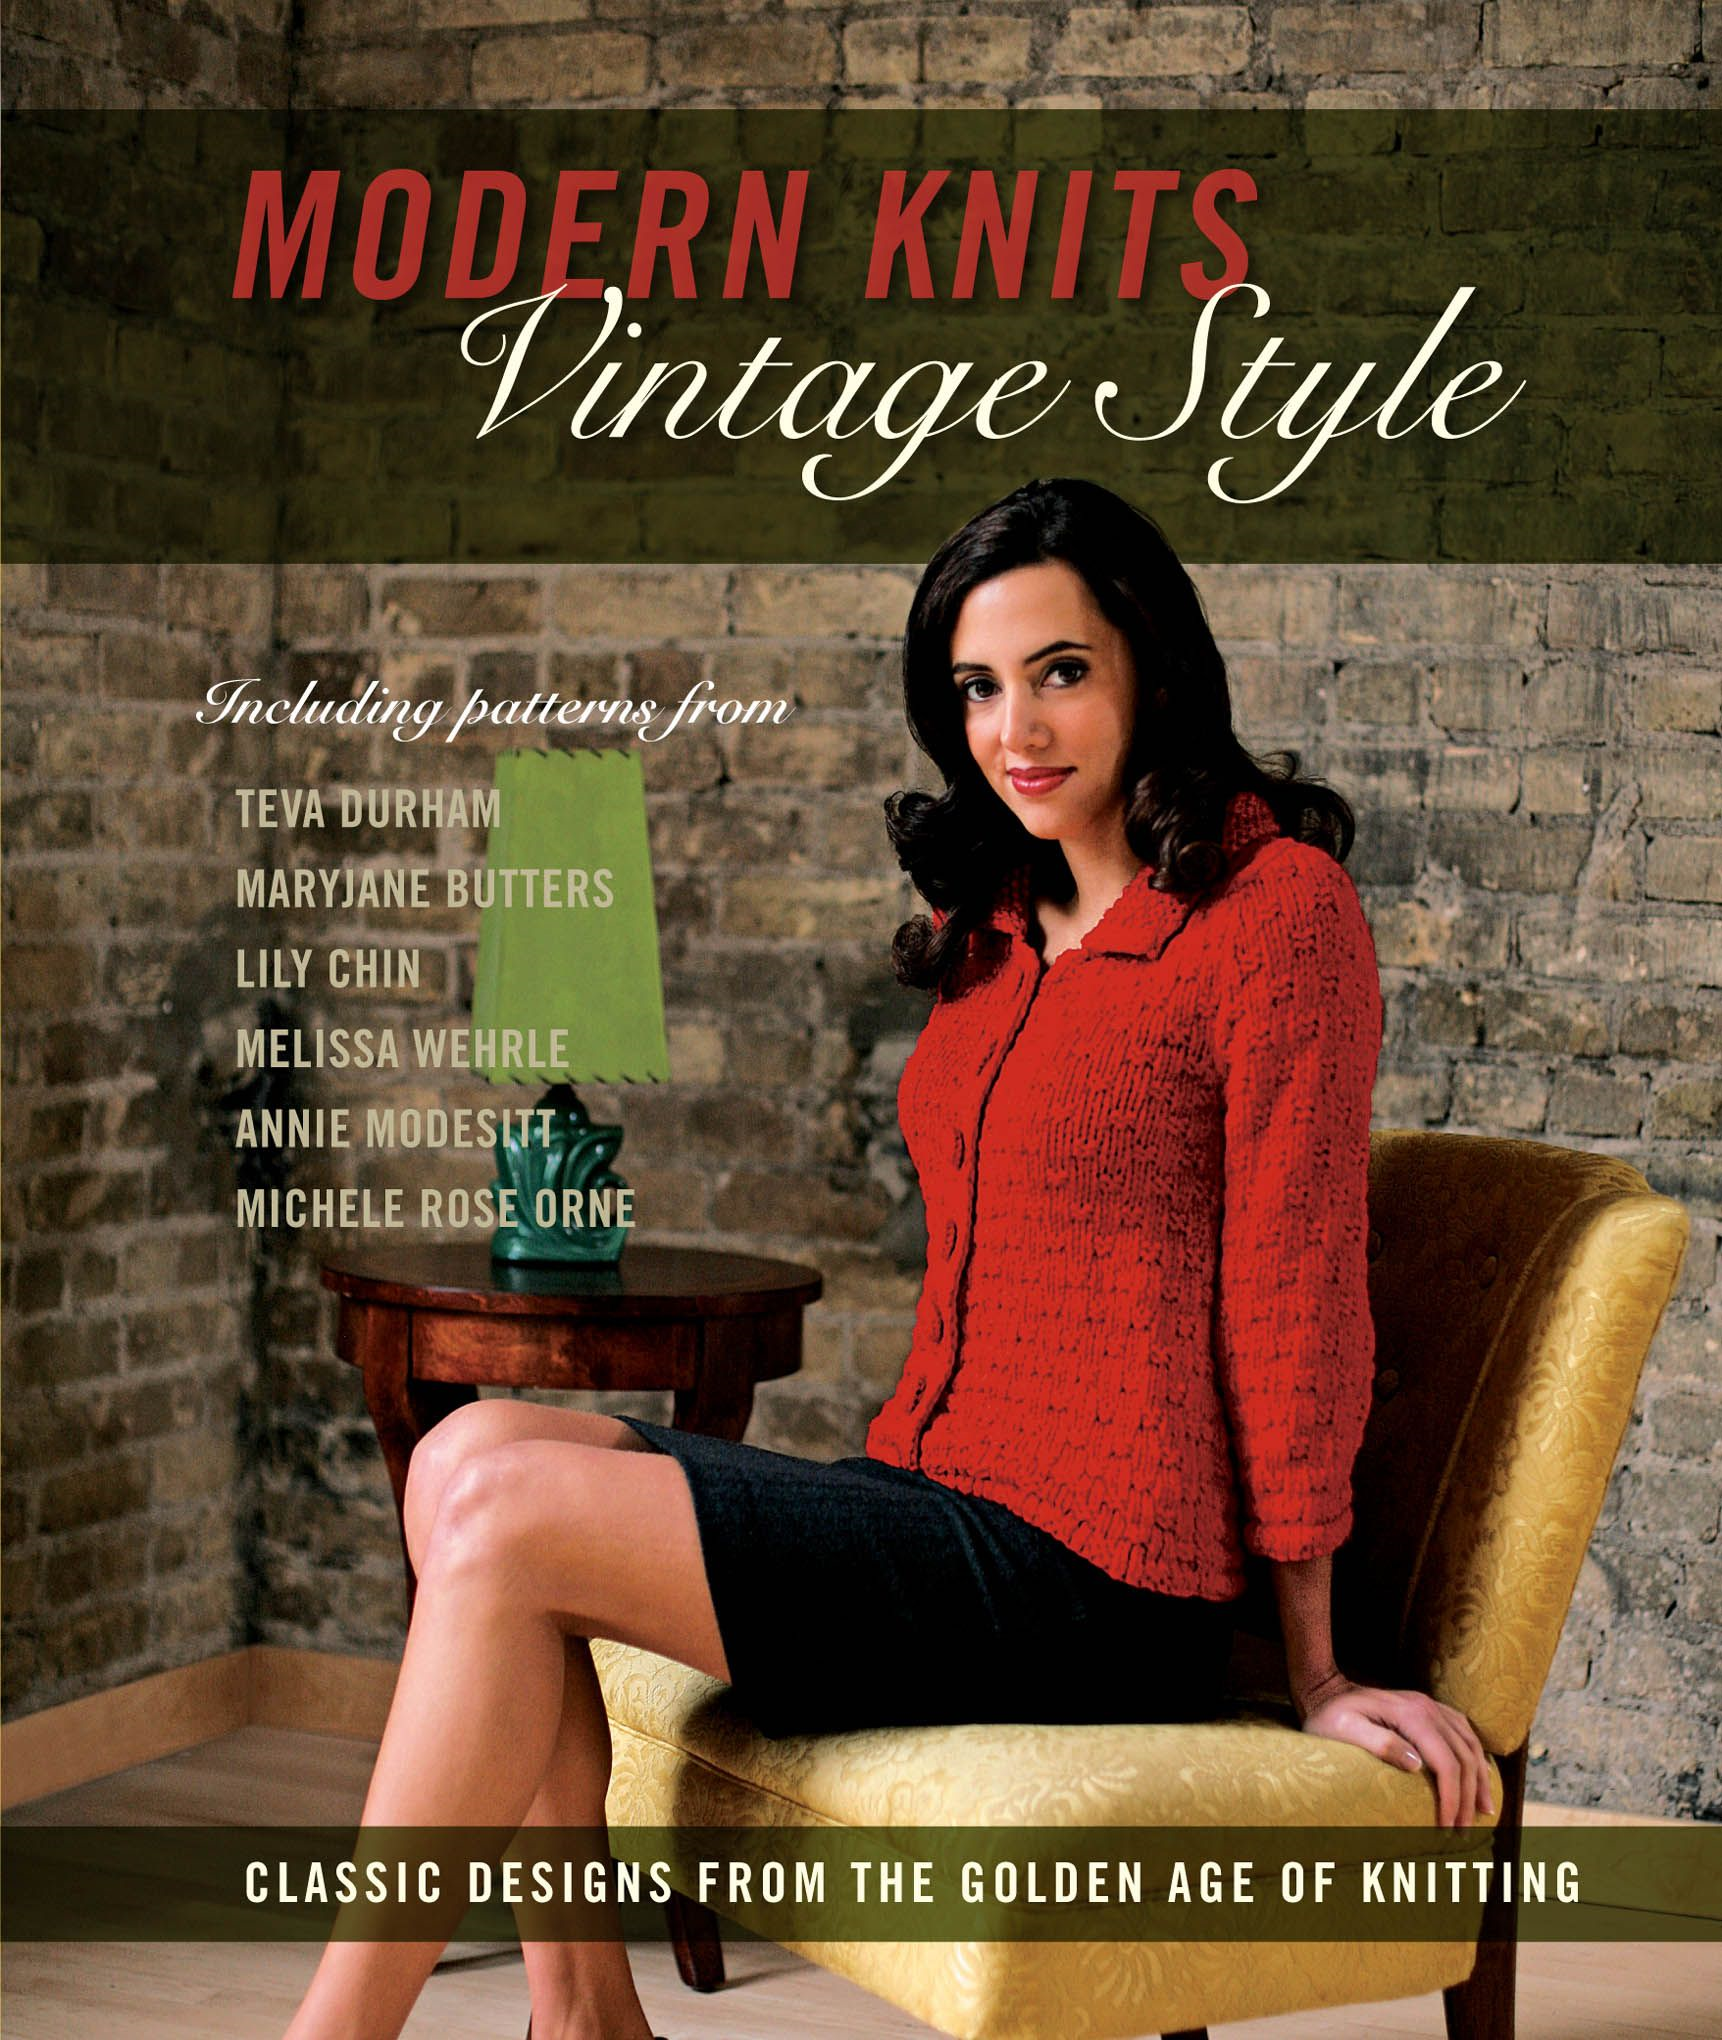 Modern Knits, Vintage Style: Classic Designs from the Golden Age of Knitting By: Kari Cornell,Jennifer Simonson